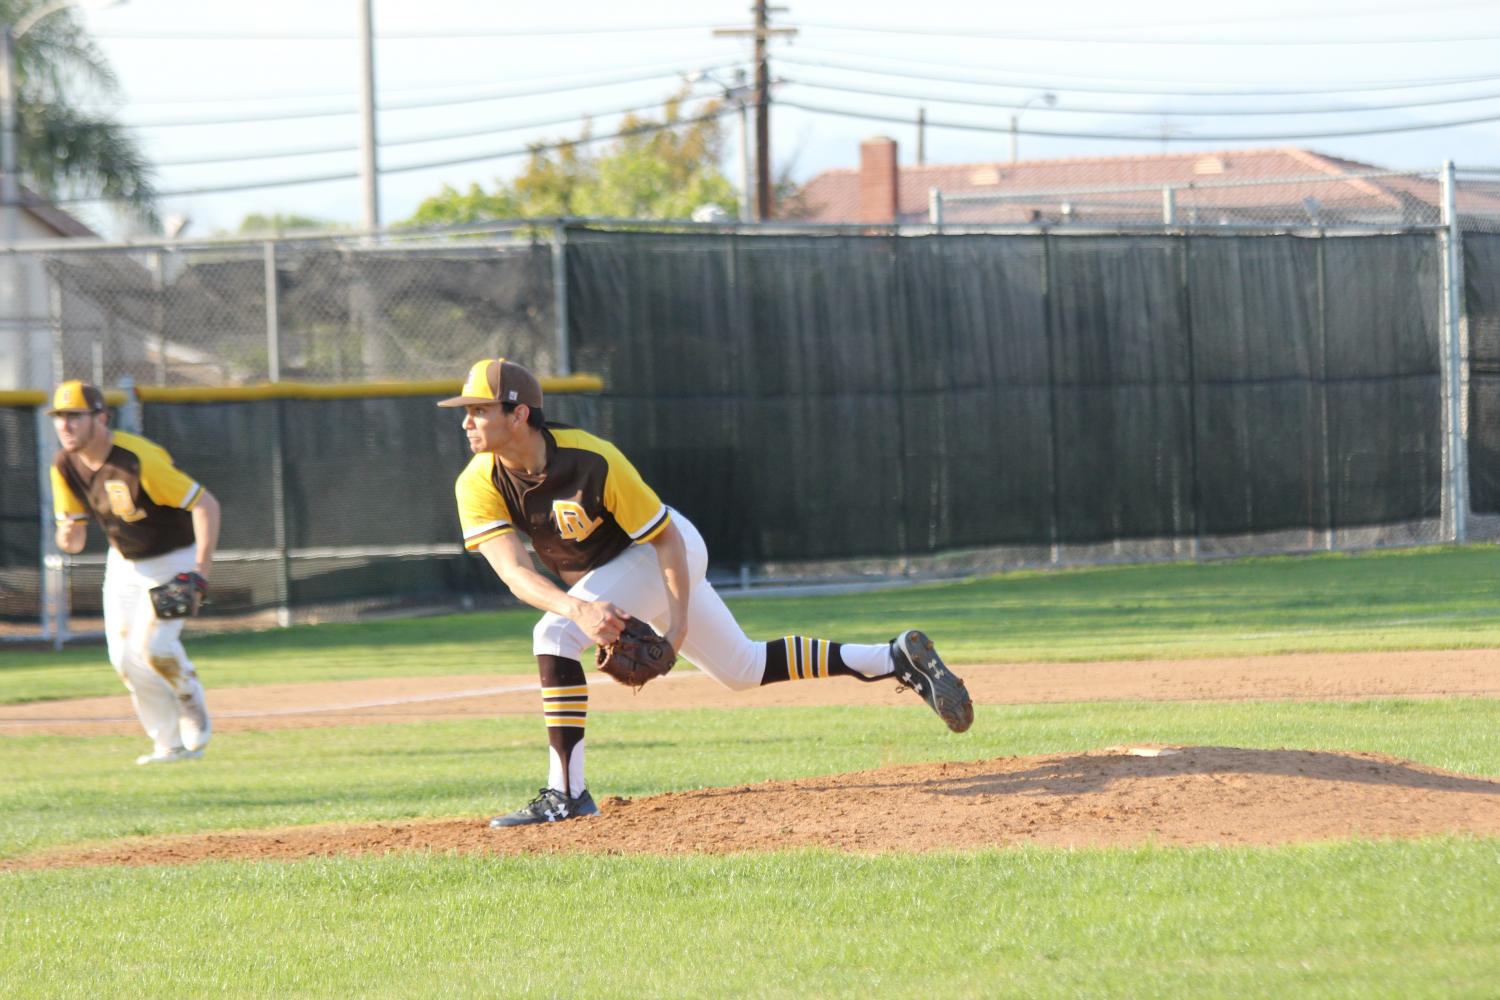 Don Lugo very own Josh Ibarra makes an out to 3rd baseman to make an out against Cajon High School.